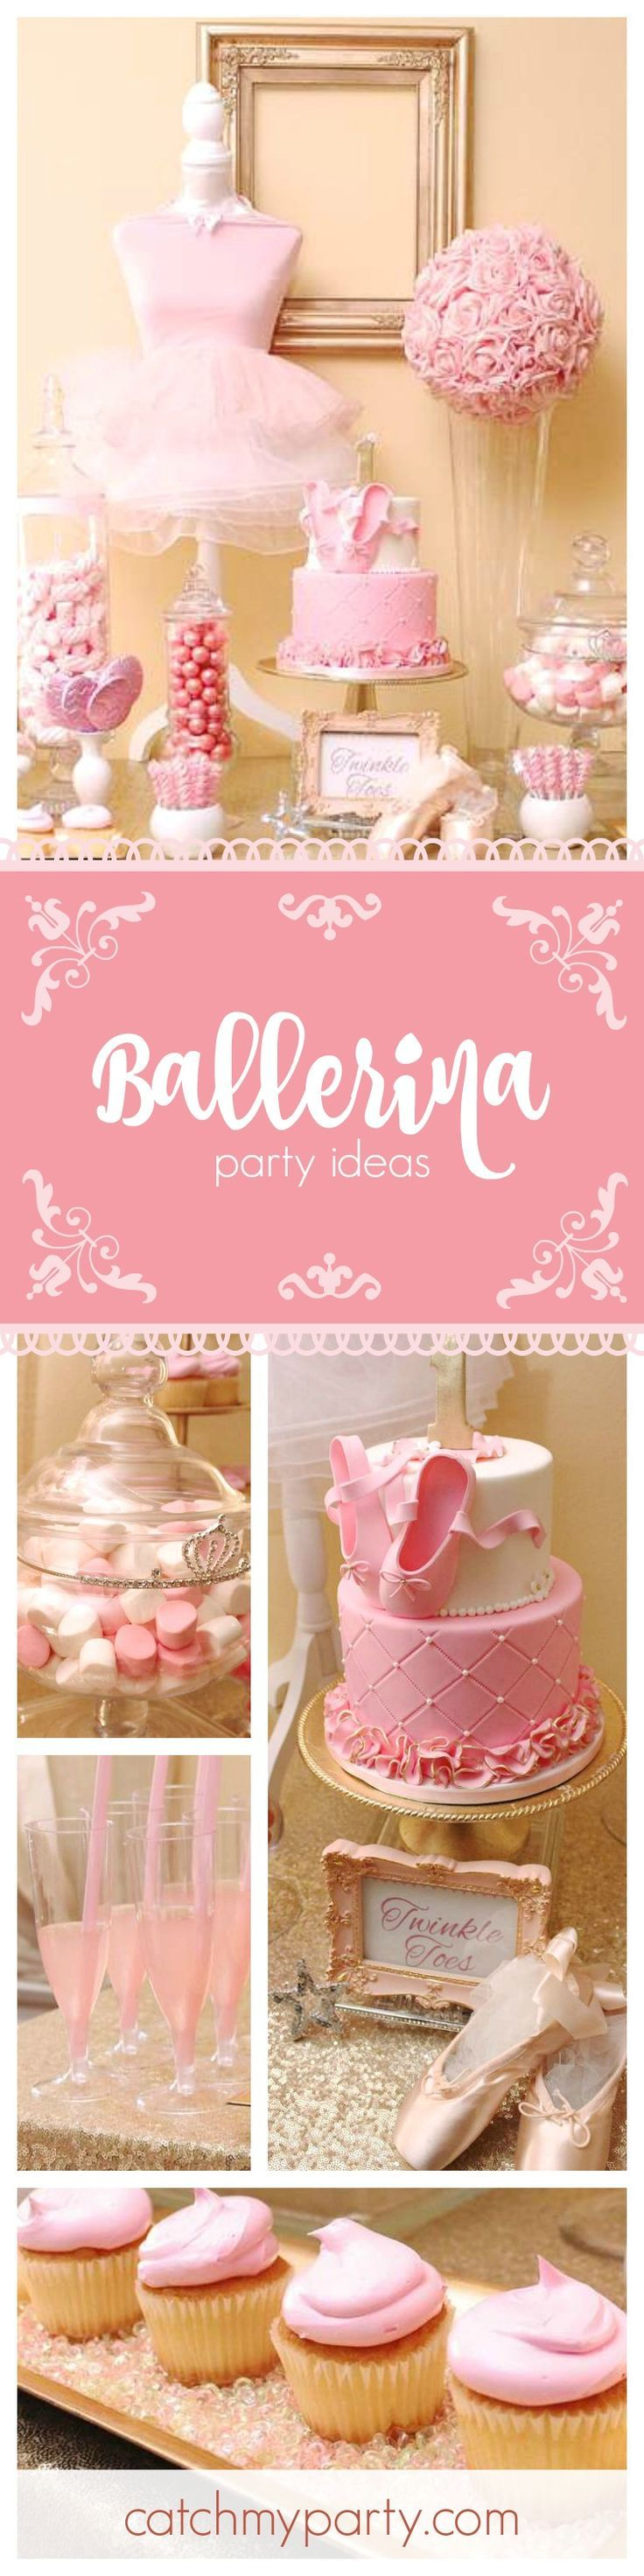 Check out this fabulous Ballerina 1st birthday party! The pink birthday cake with ballet shoes on top is just so gorgeous! See more party ideas at http://CatchMyParty.com